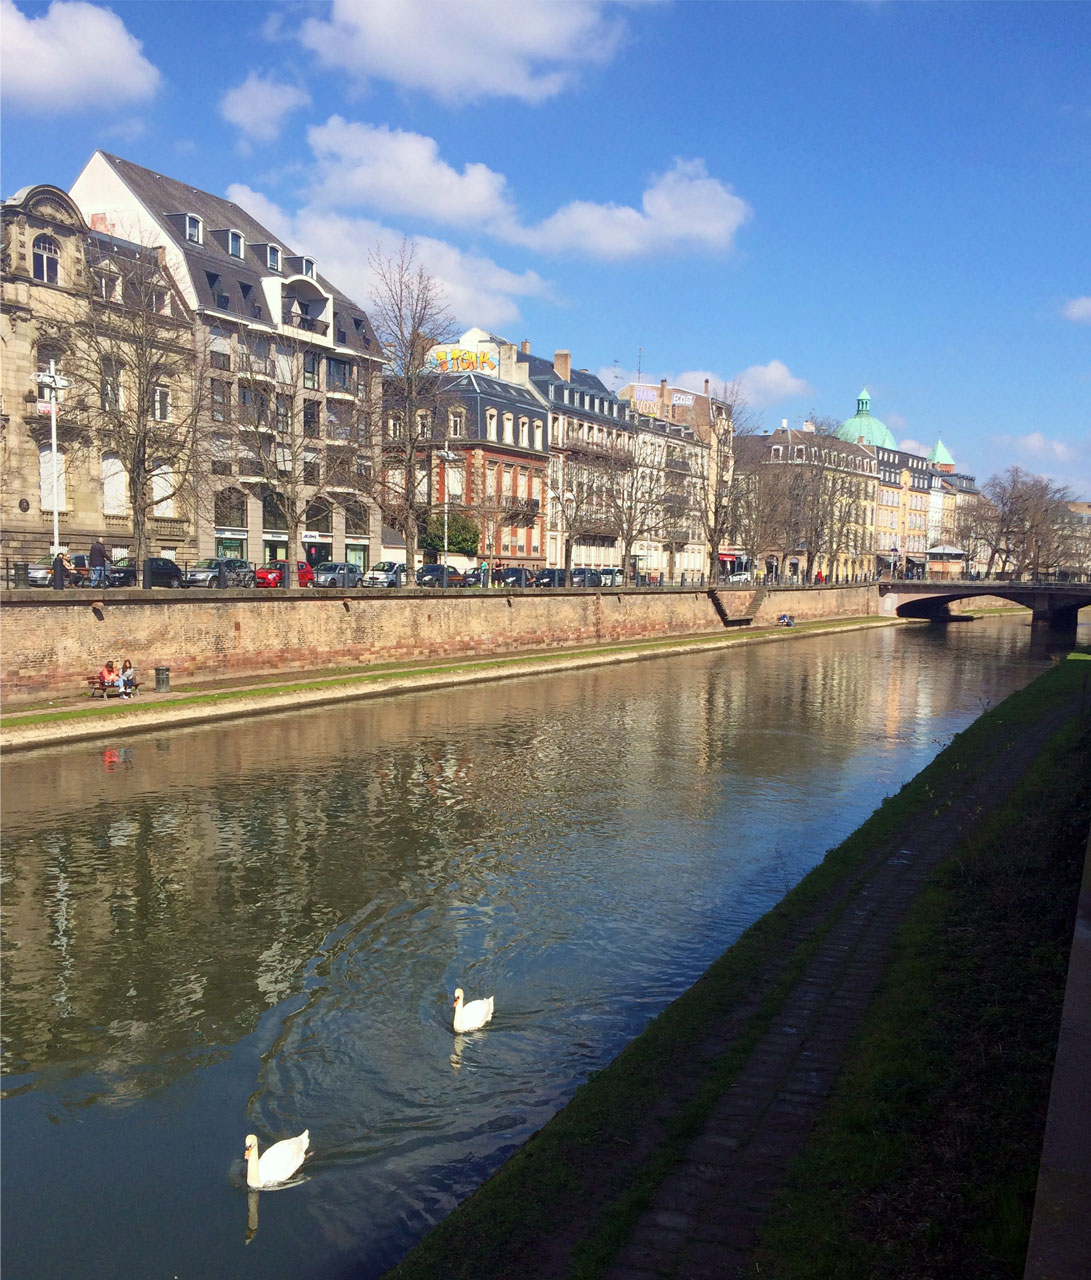 It's a joy to see the swan glide through the canal against the beautiful backdrop of Strasbourg